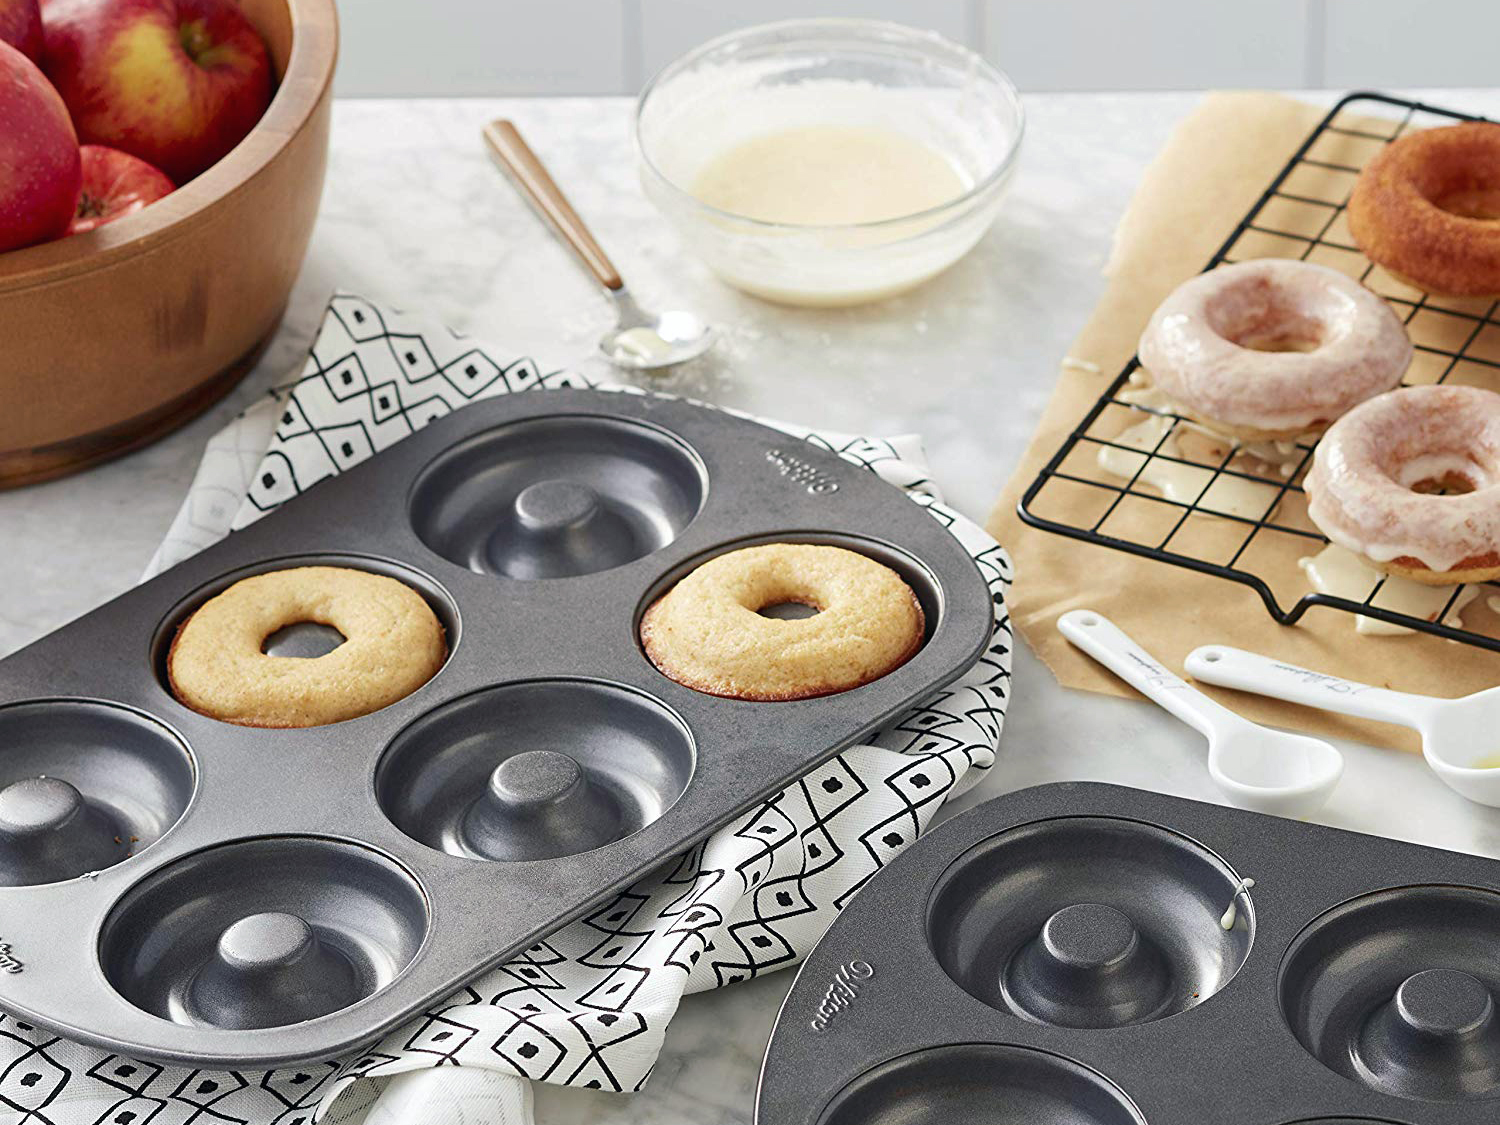 Wilton Non-Stick 6-Cavity Donut Baking Pans